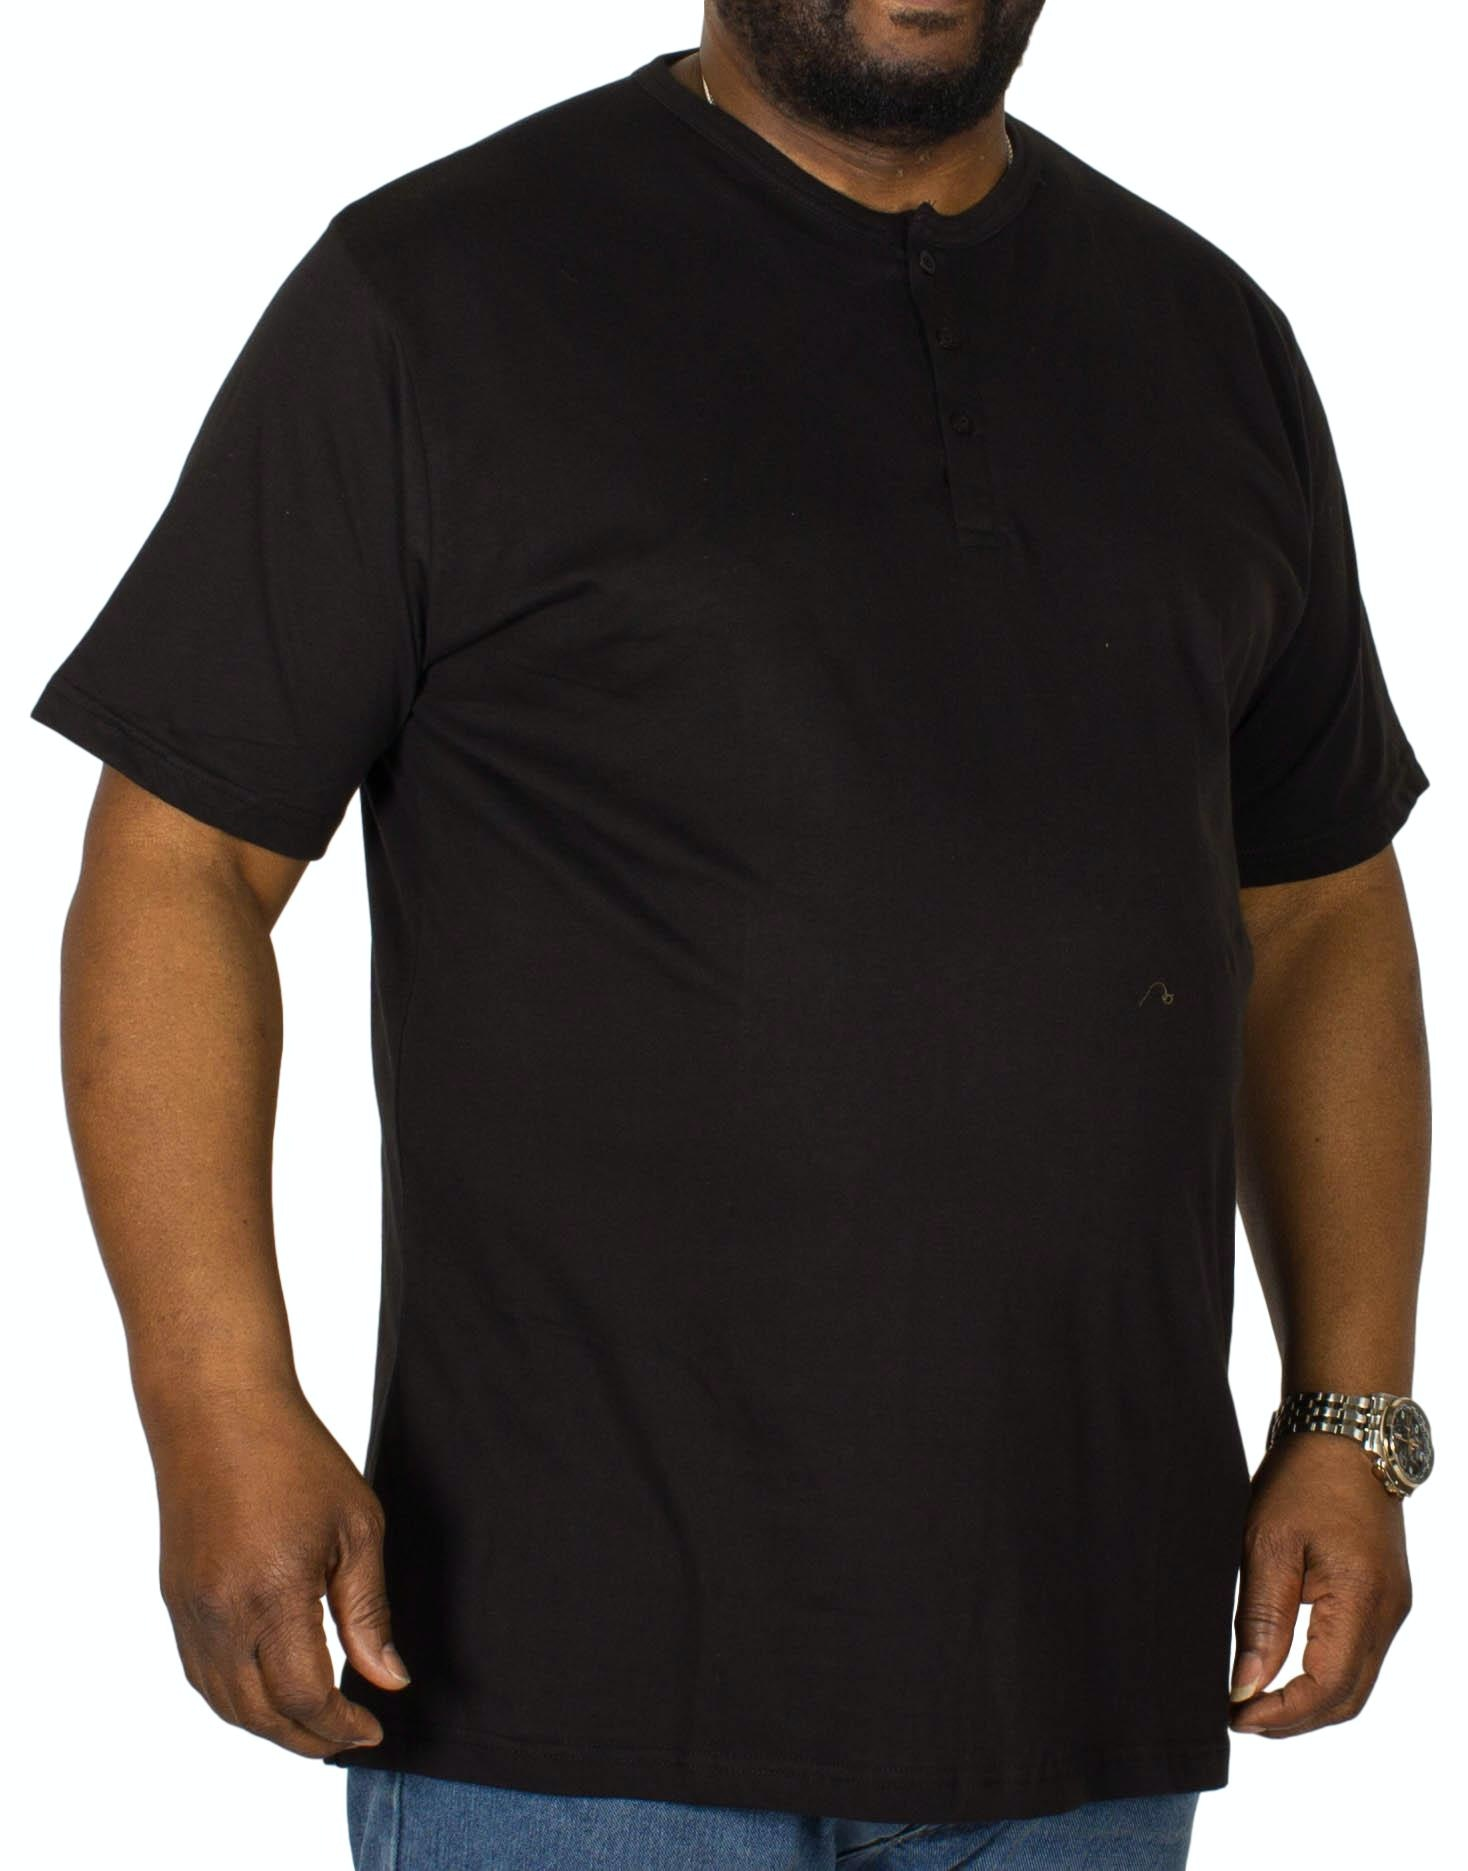 Bigdude Grandad T-Shirt Black Tall